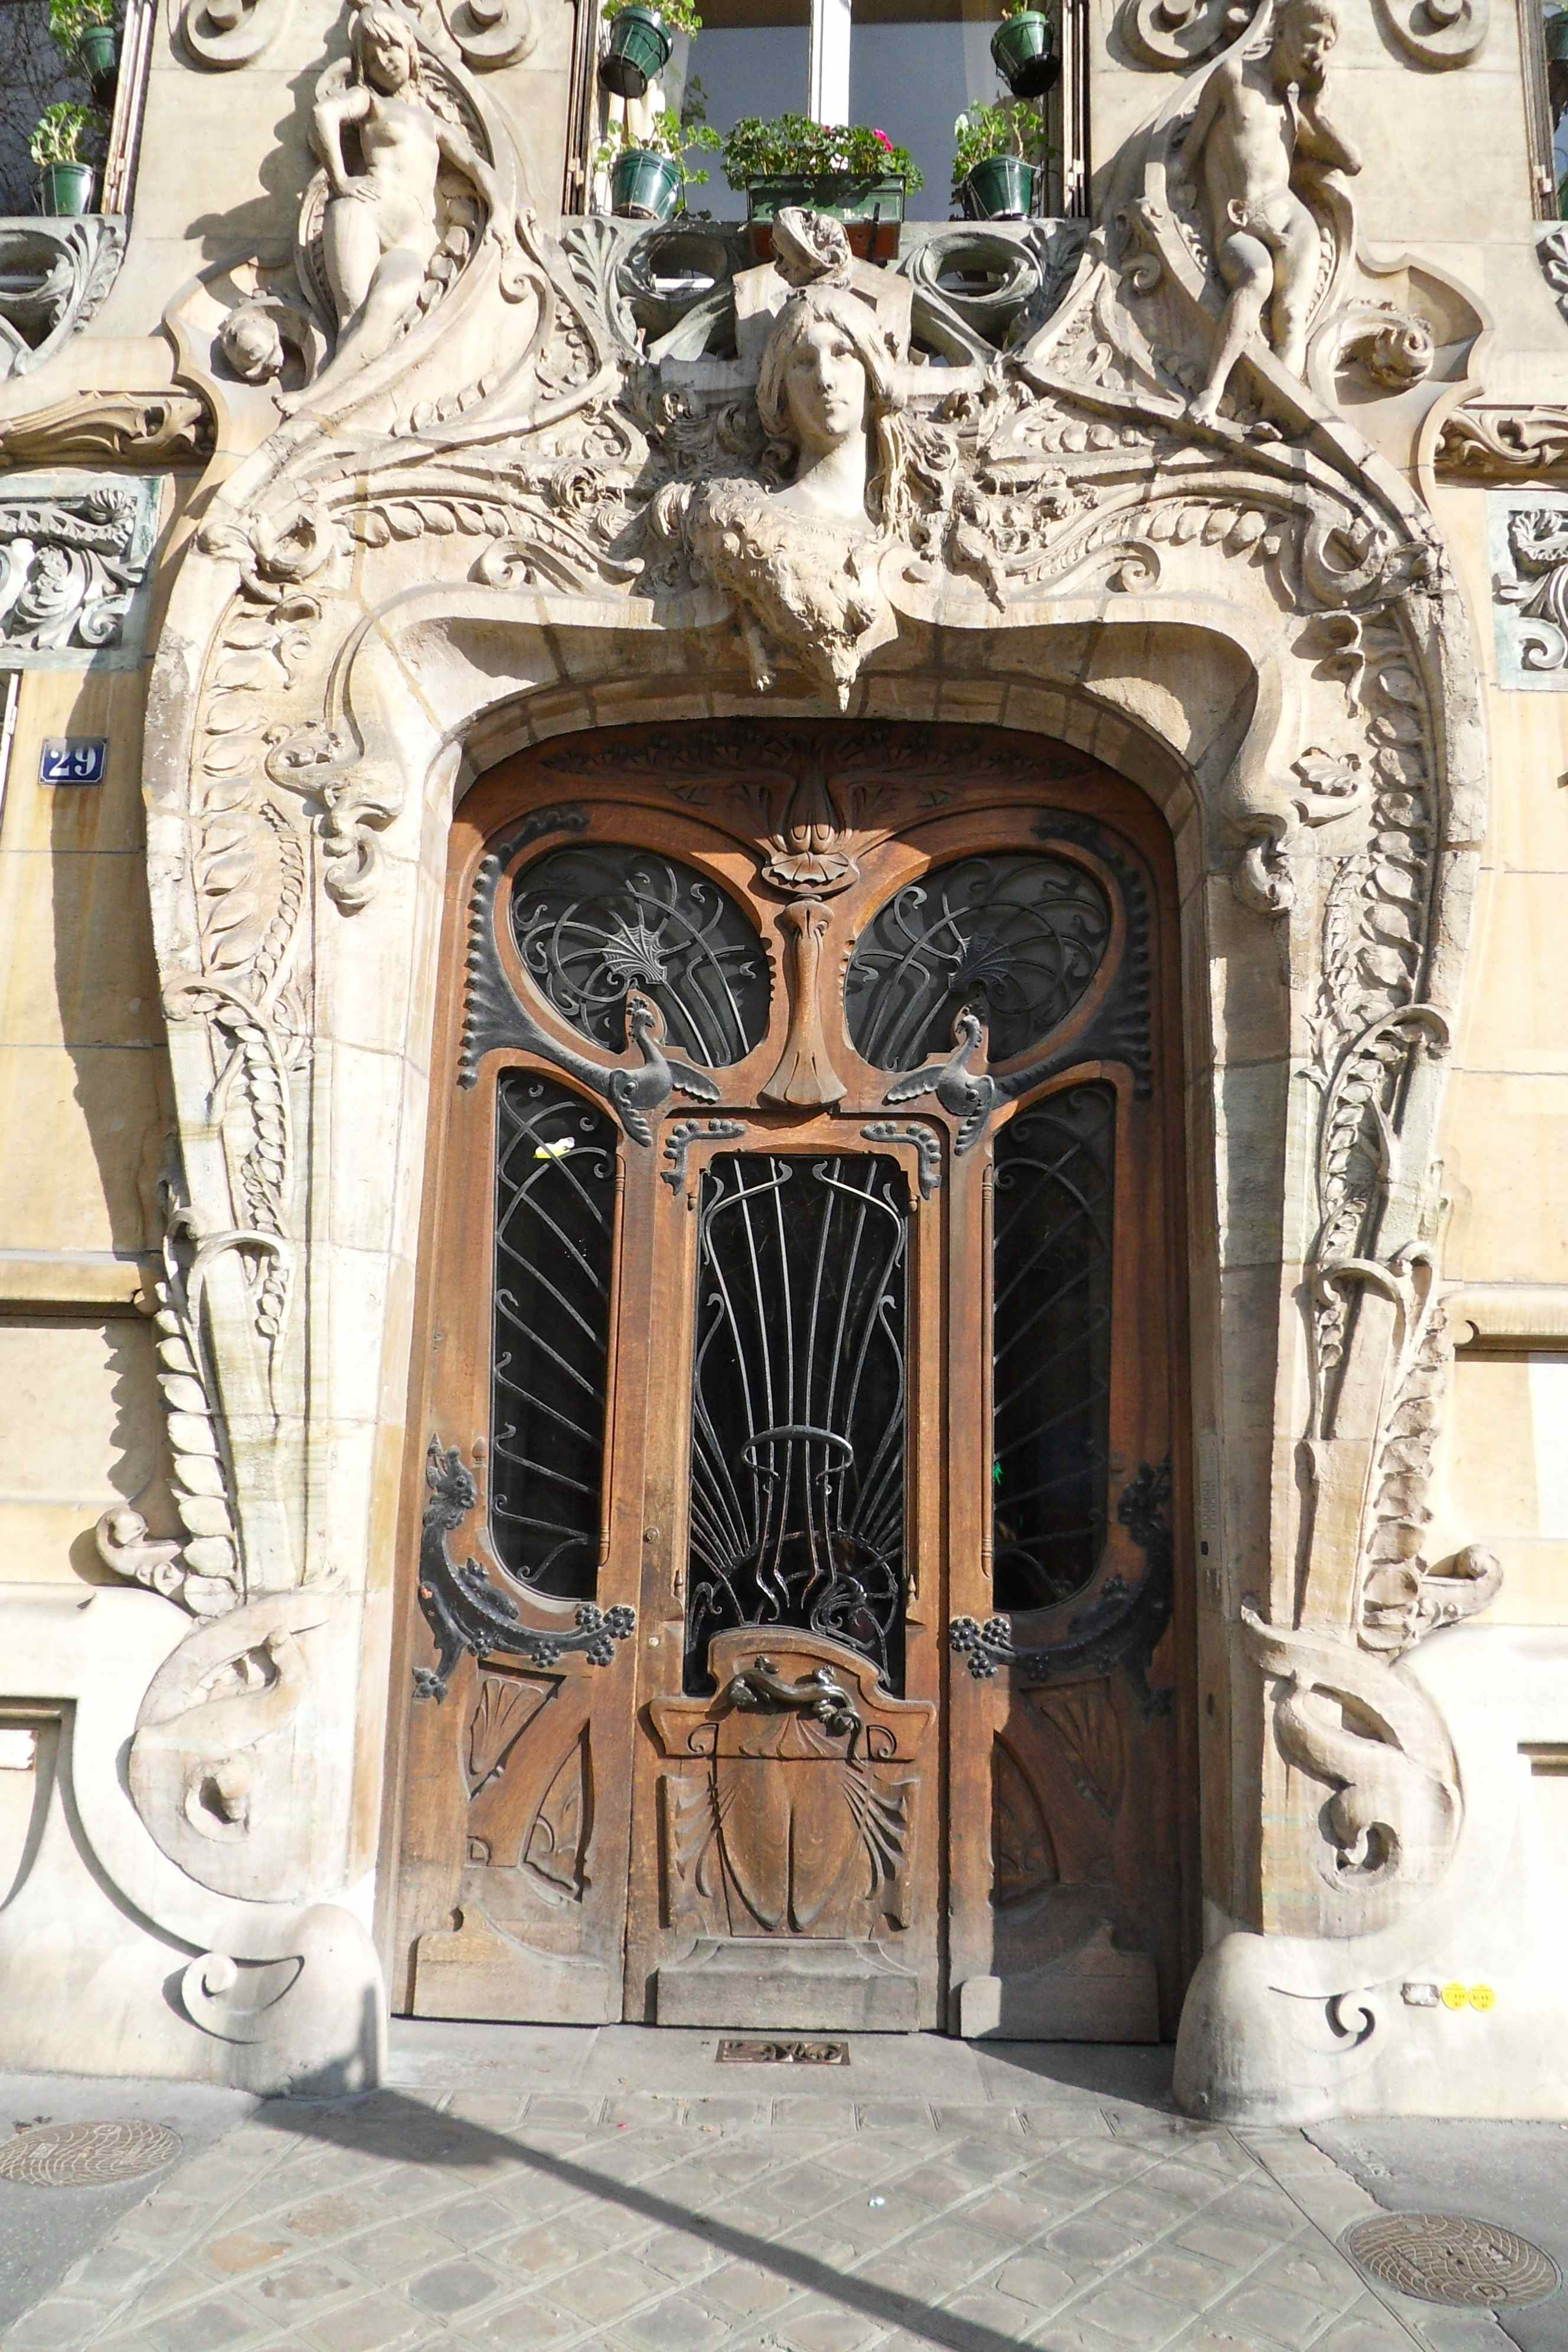 Frenchless in france the most beautiful door in paris for Architecture art nouveau